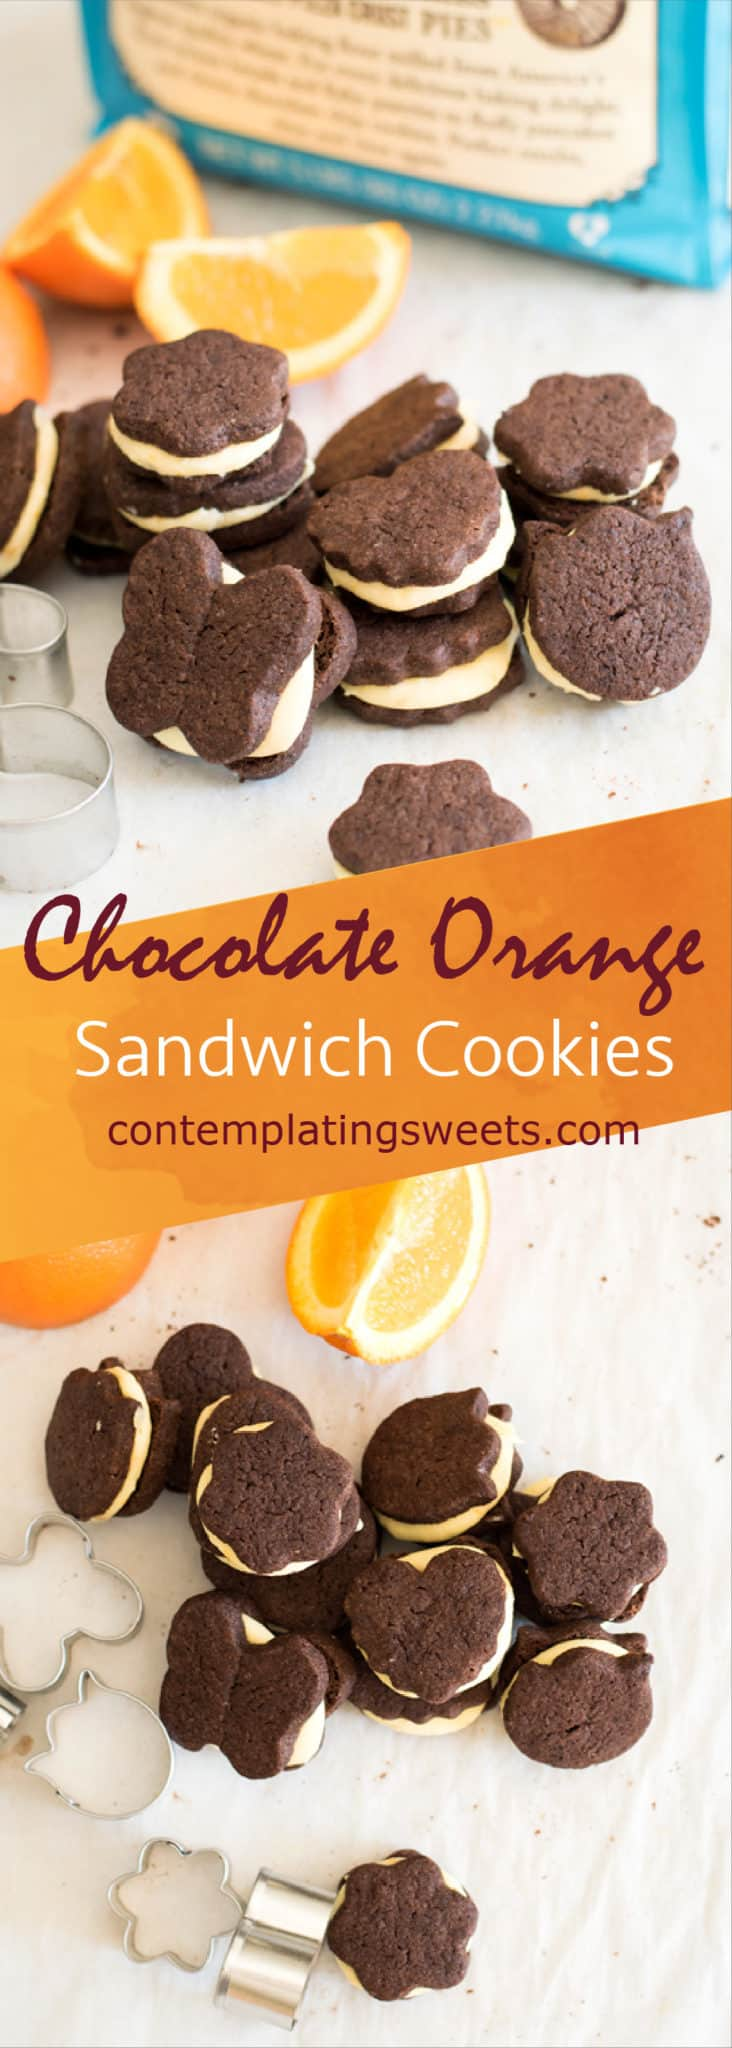 These adorable chocolate orange sandwich cookies have an intense chocolate flavor that pairs perfectly with the fresh orange buttercream.